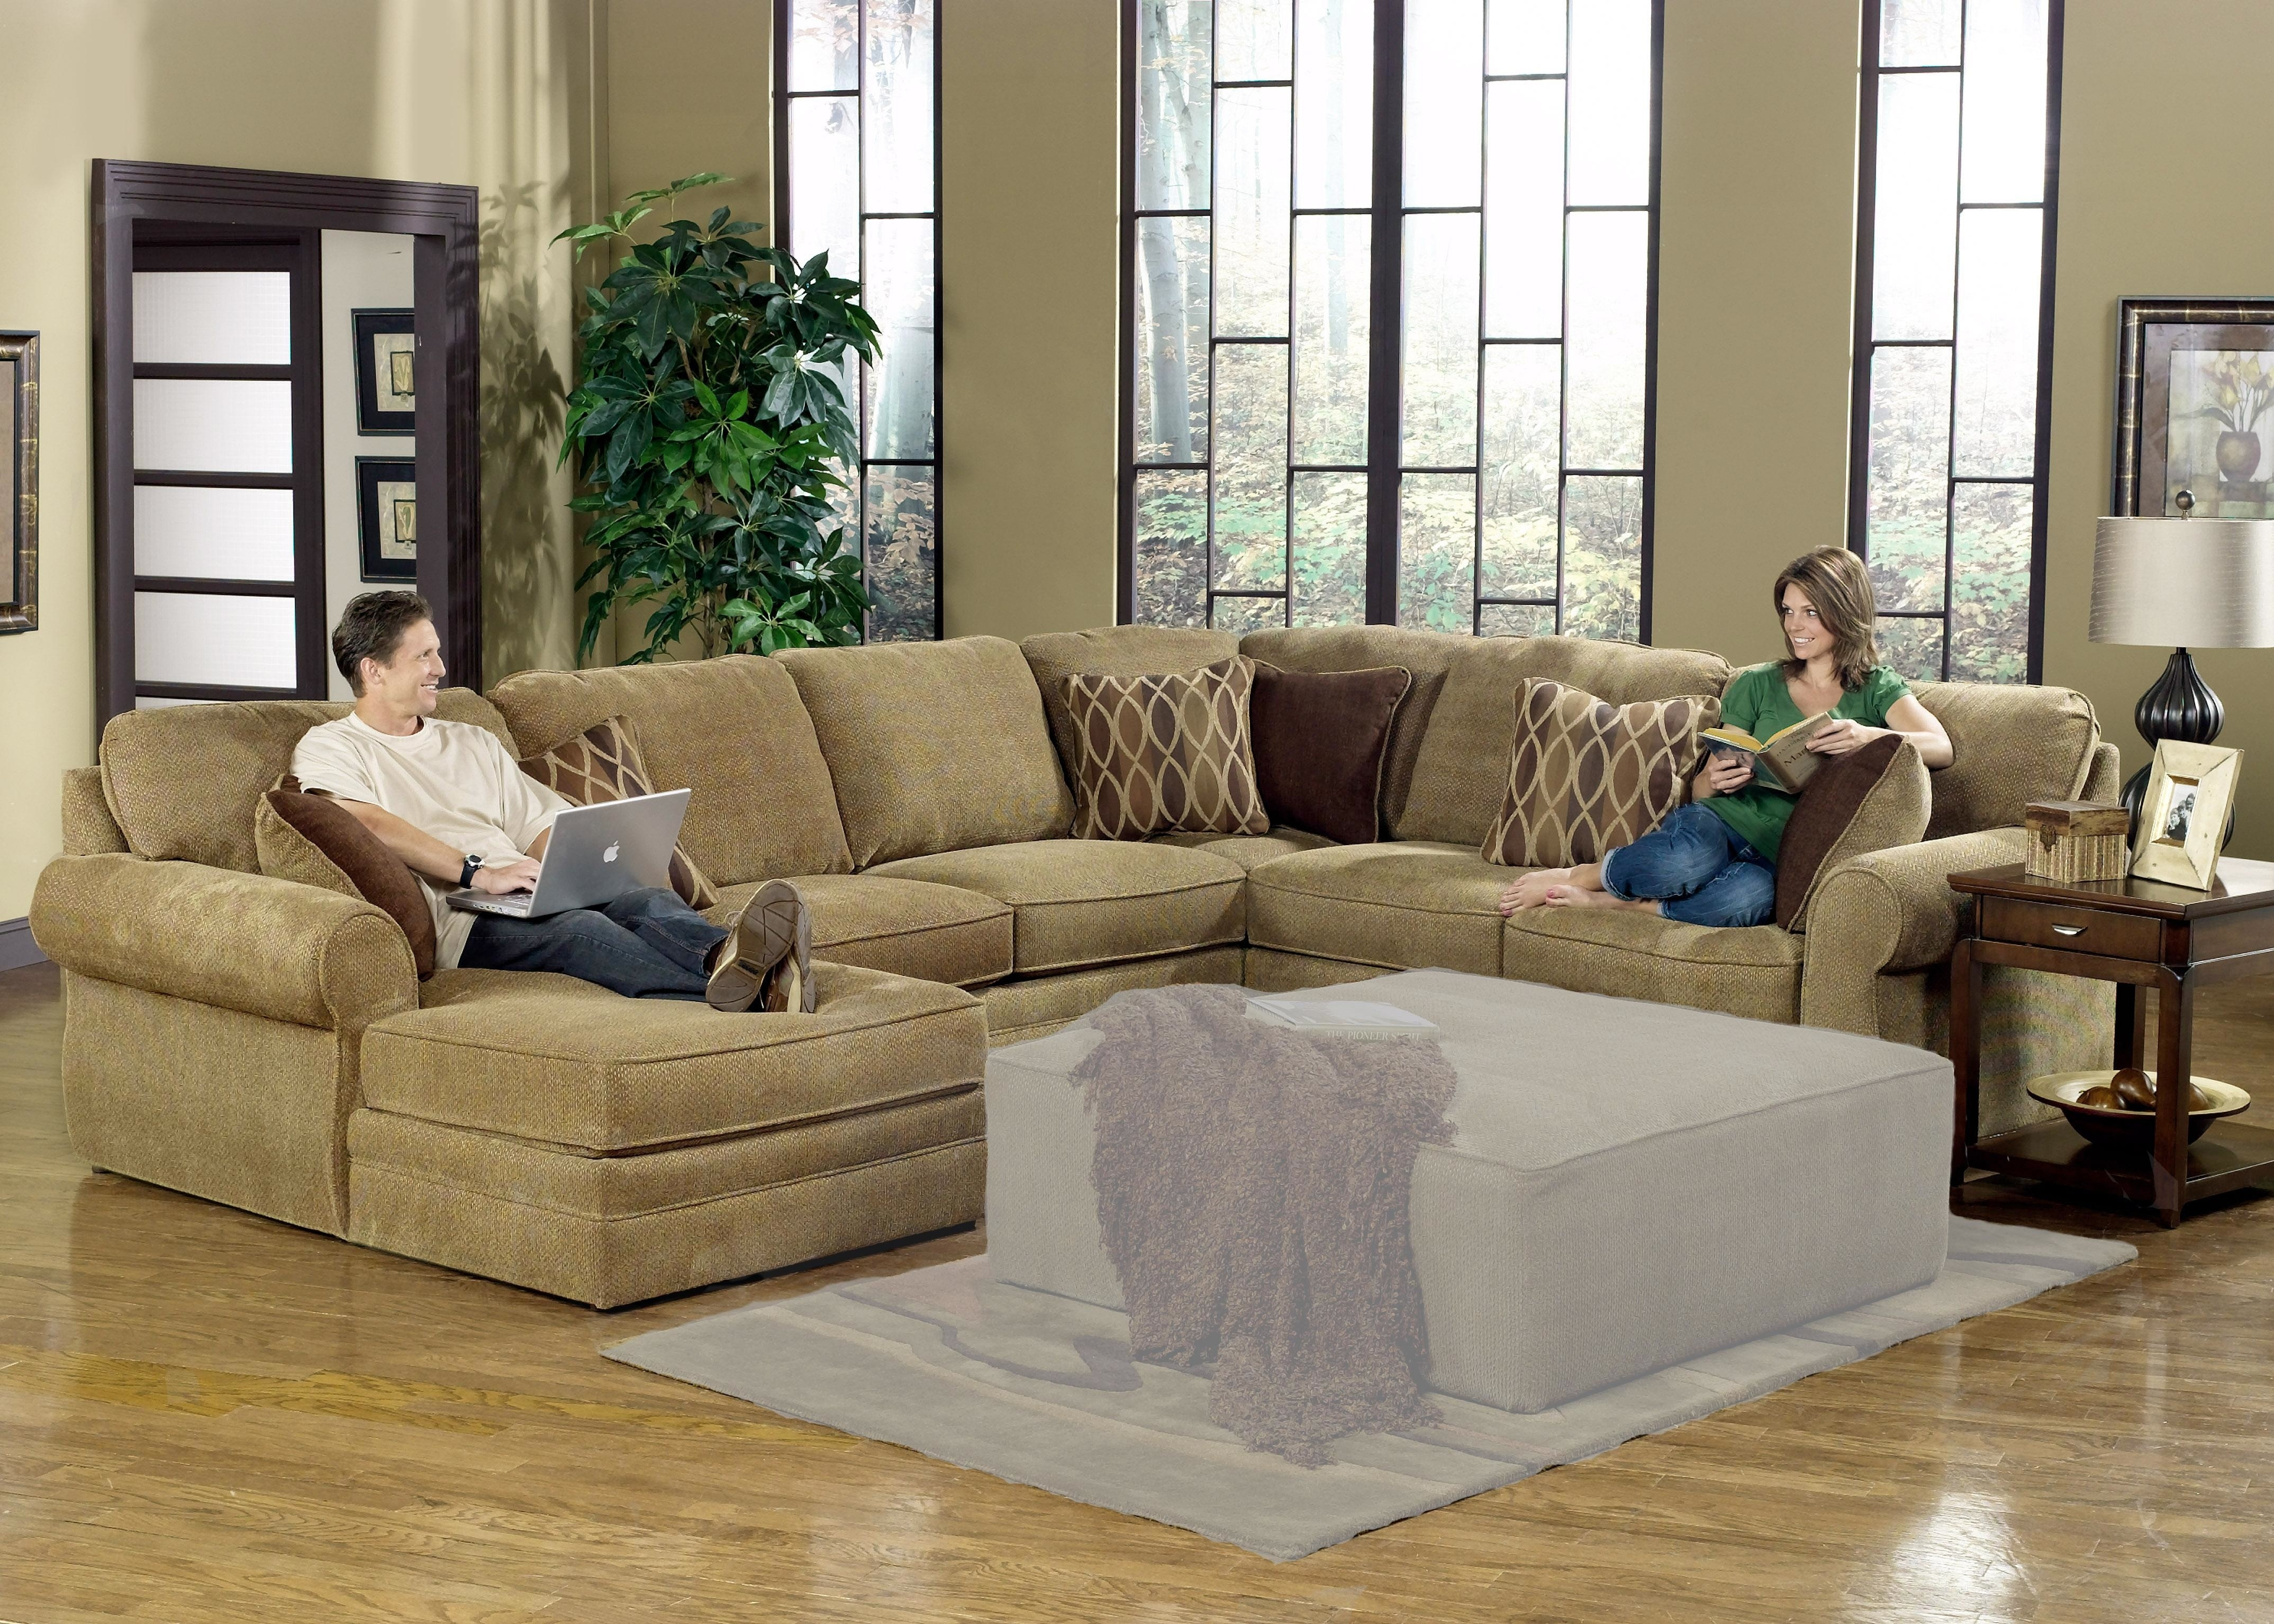 Fresh Cheap U Shaped Sectional Sofas 89 In Sleeper Sofa Atlanta With In Sectional Sofas At Atlanta (Image 4 of 10)